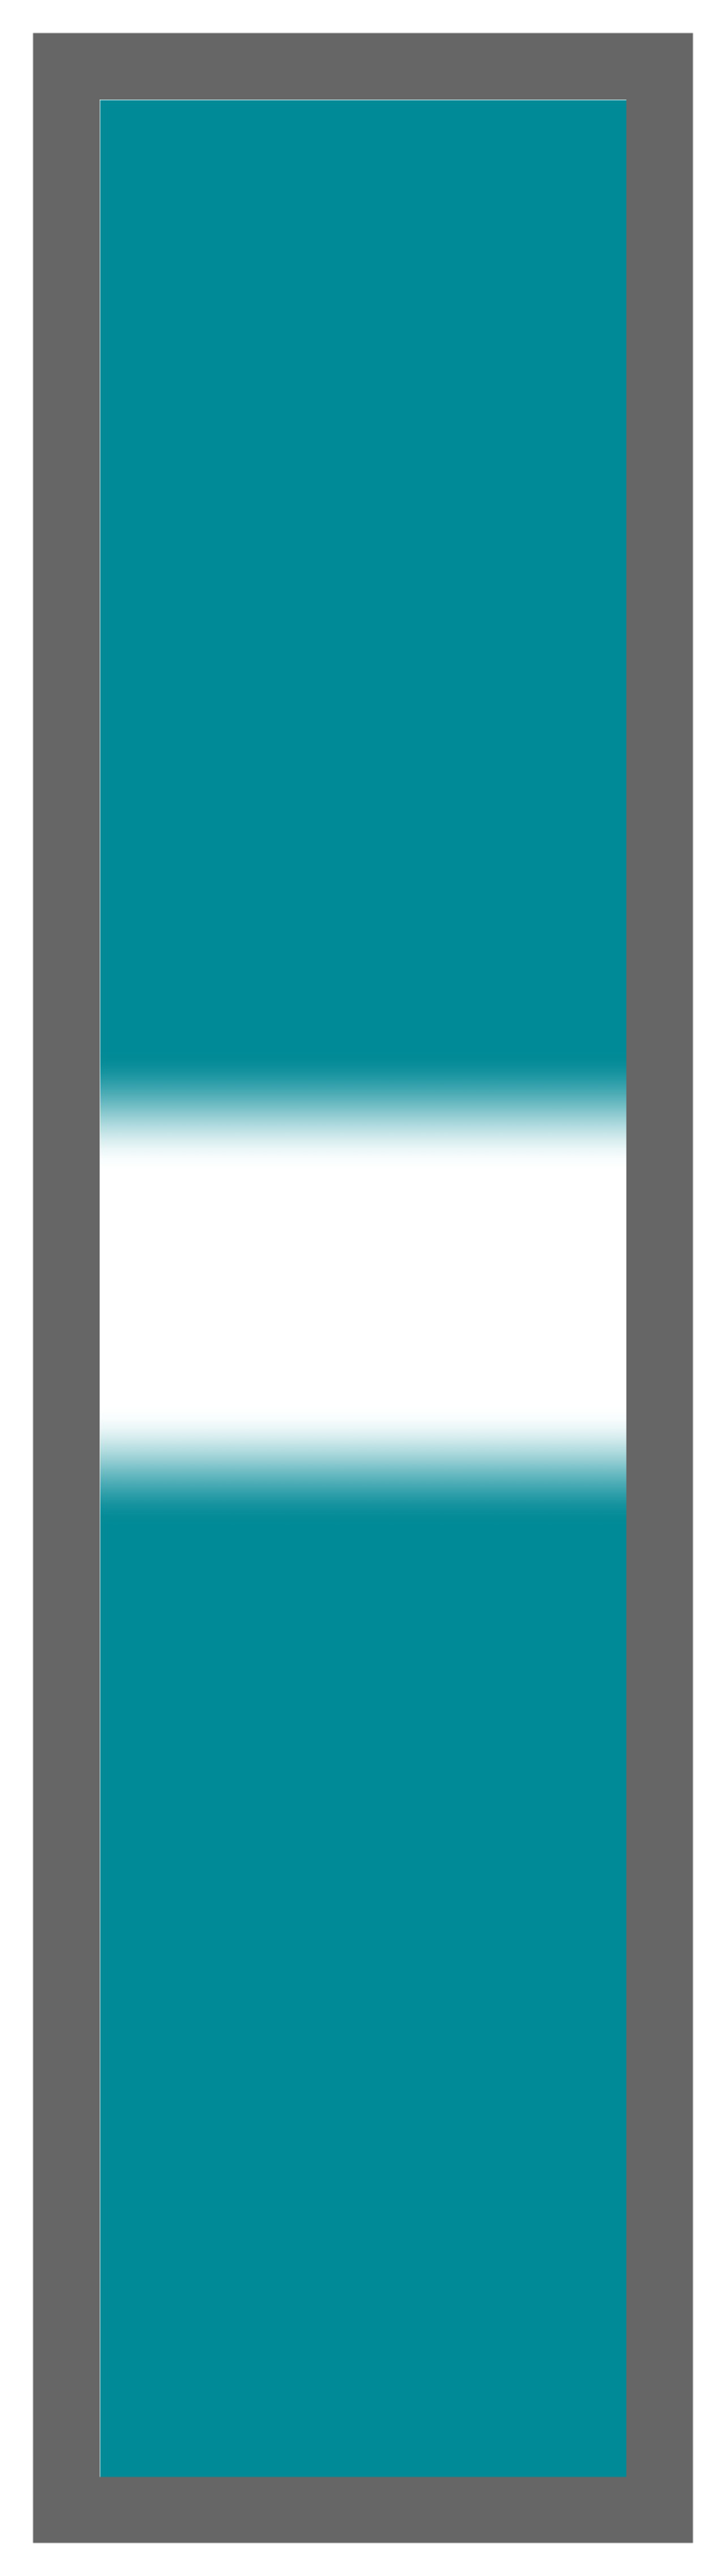 Teal-White Center Tailless